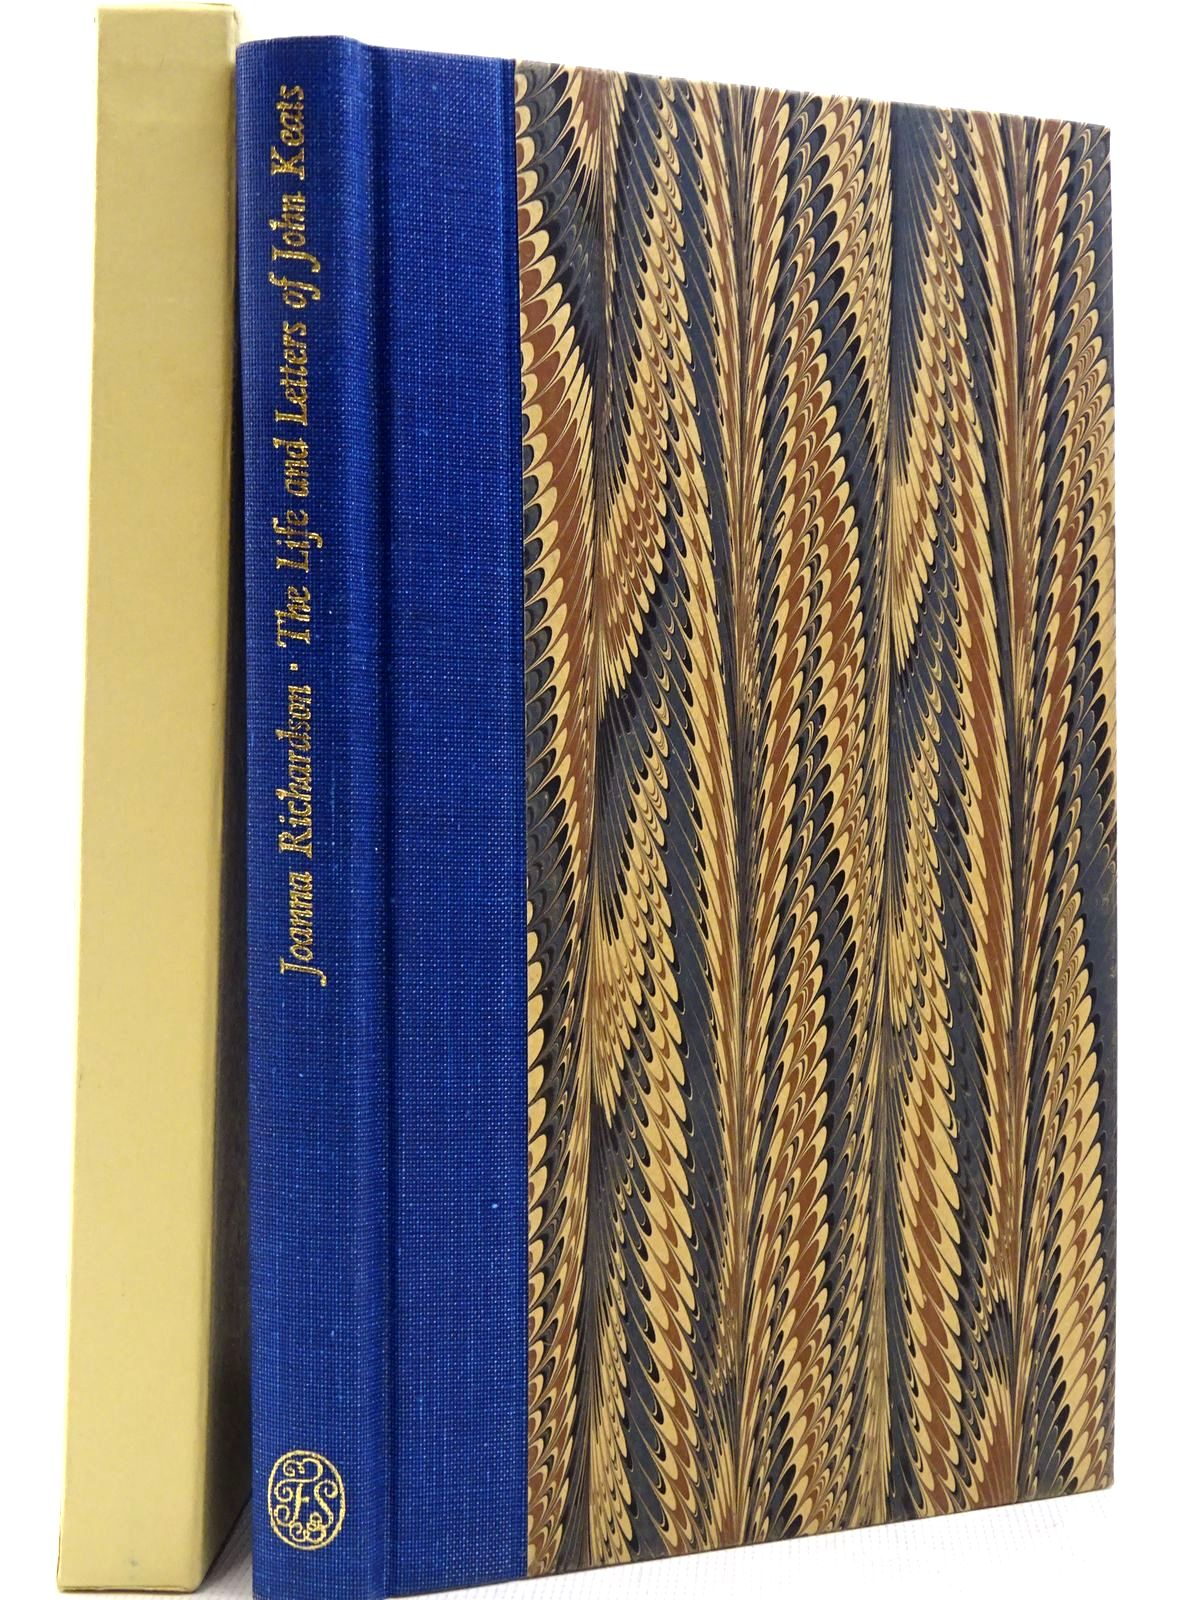 Photo of THE LIFE AND LETTERS OF JOHN KEATS written by Richardson, Joanna Keats, John published by Folio Society (STOCK CODE: 2129373)  for sale by Stella & Rose's Books